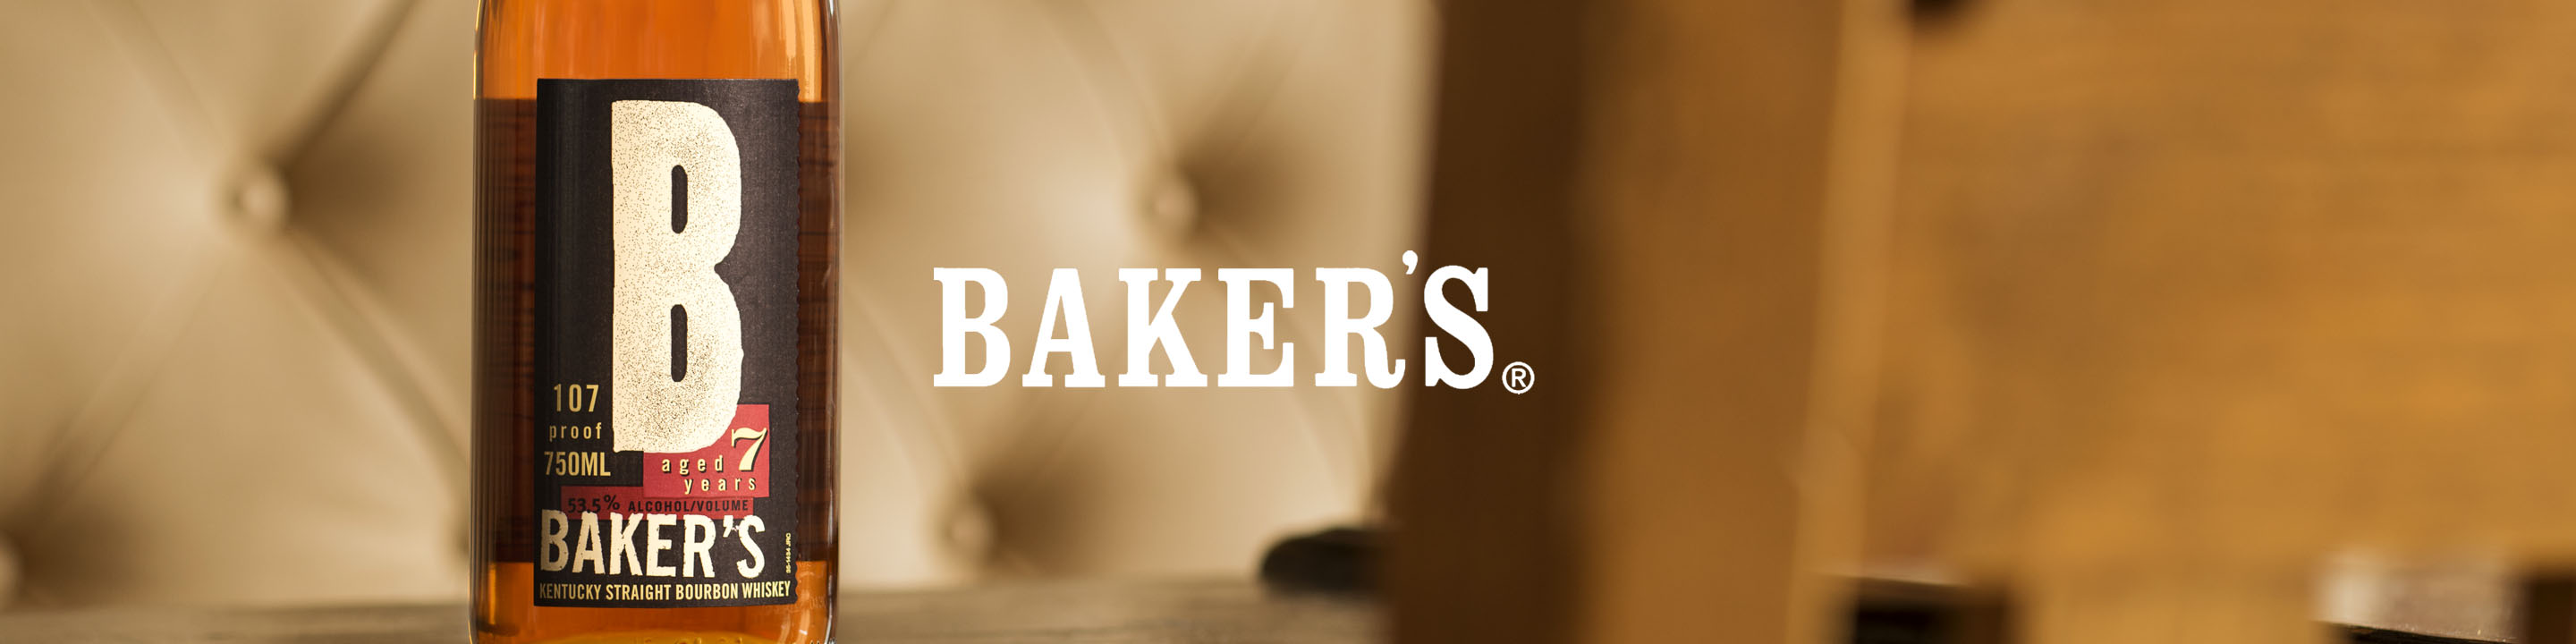 Baker's® Bourbon is a Small Batch, Kentucky Straight Bourbon Distilled & Selected in the Traditions of Baker Beam.  Buy Baker's online now from nearby liquor stores via Minibar Delivery.